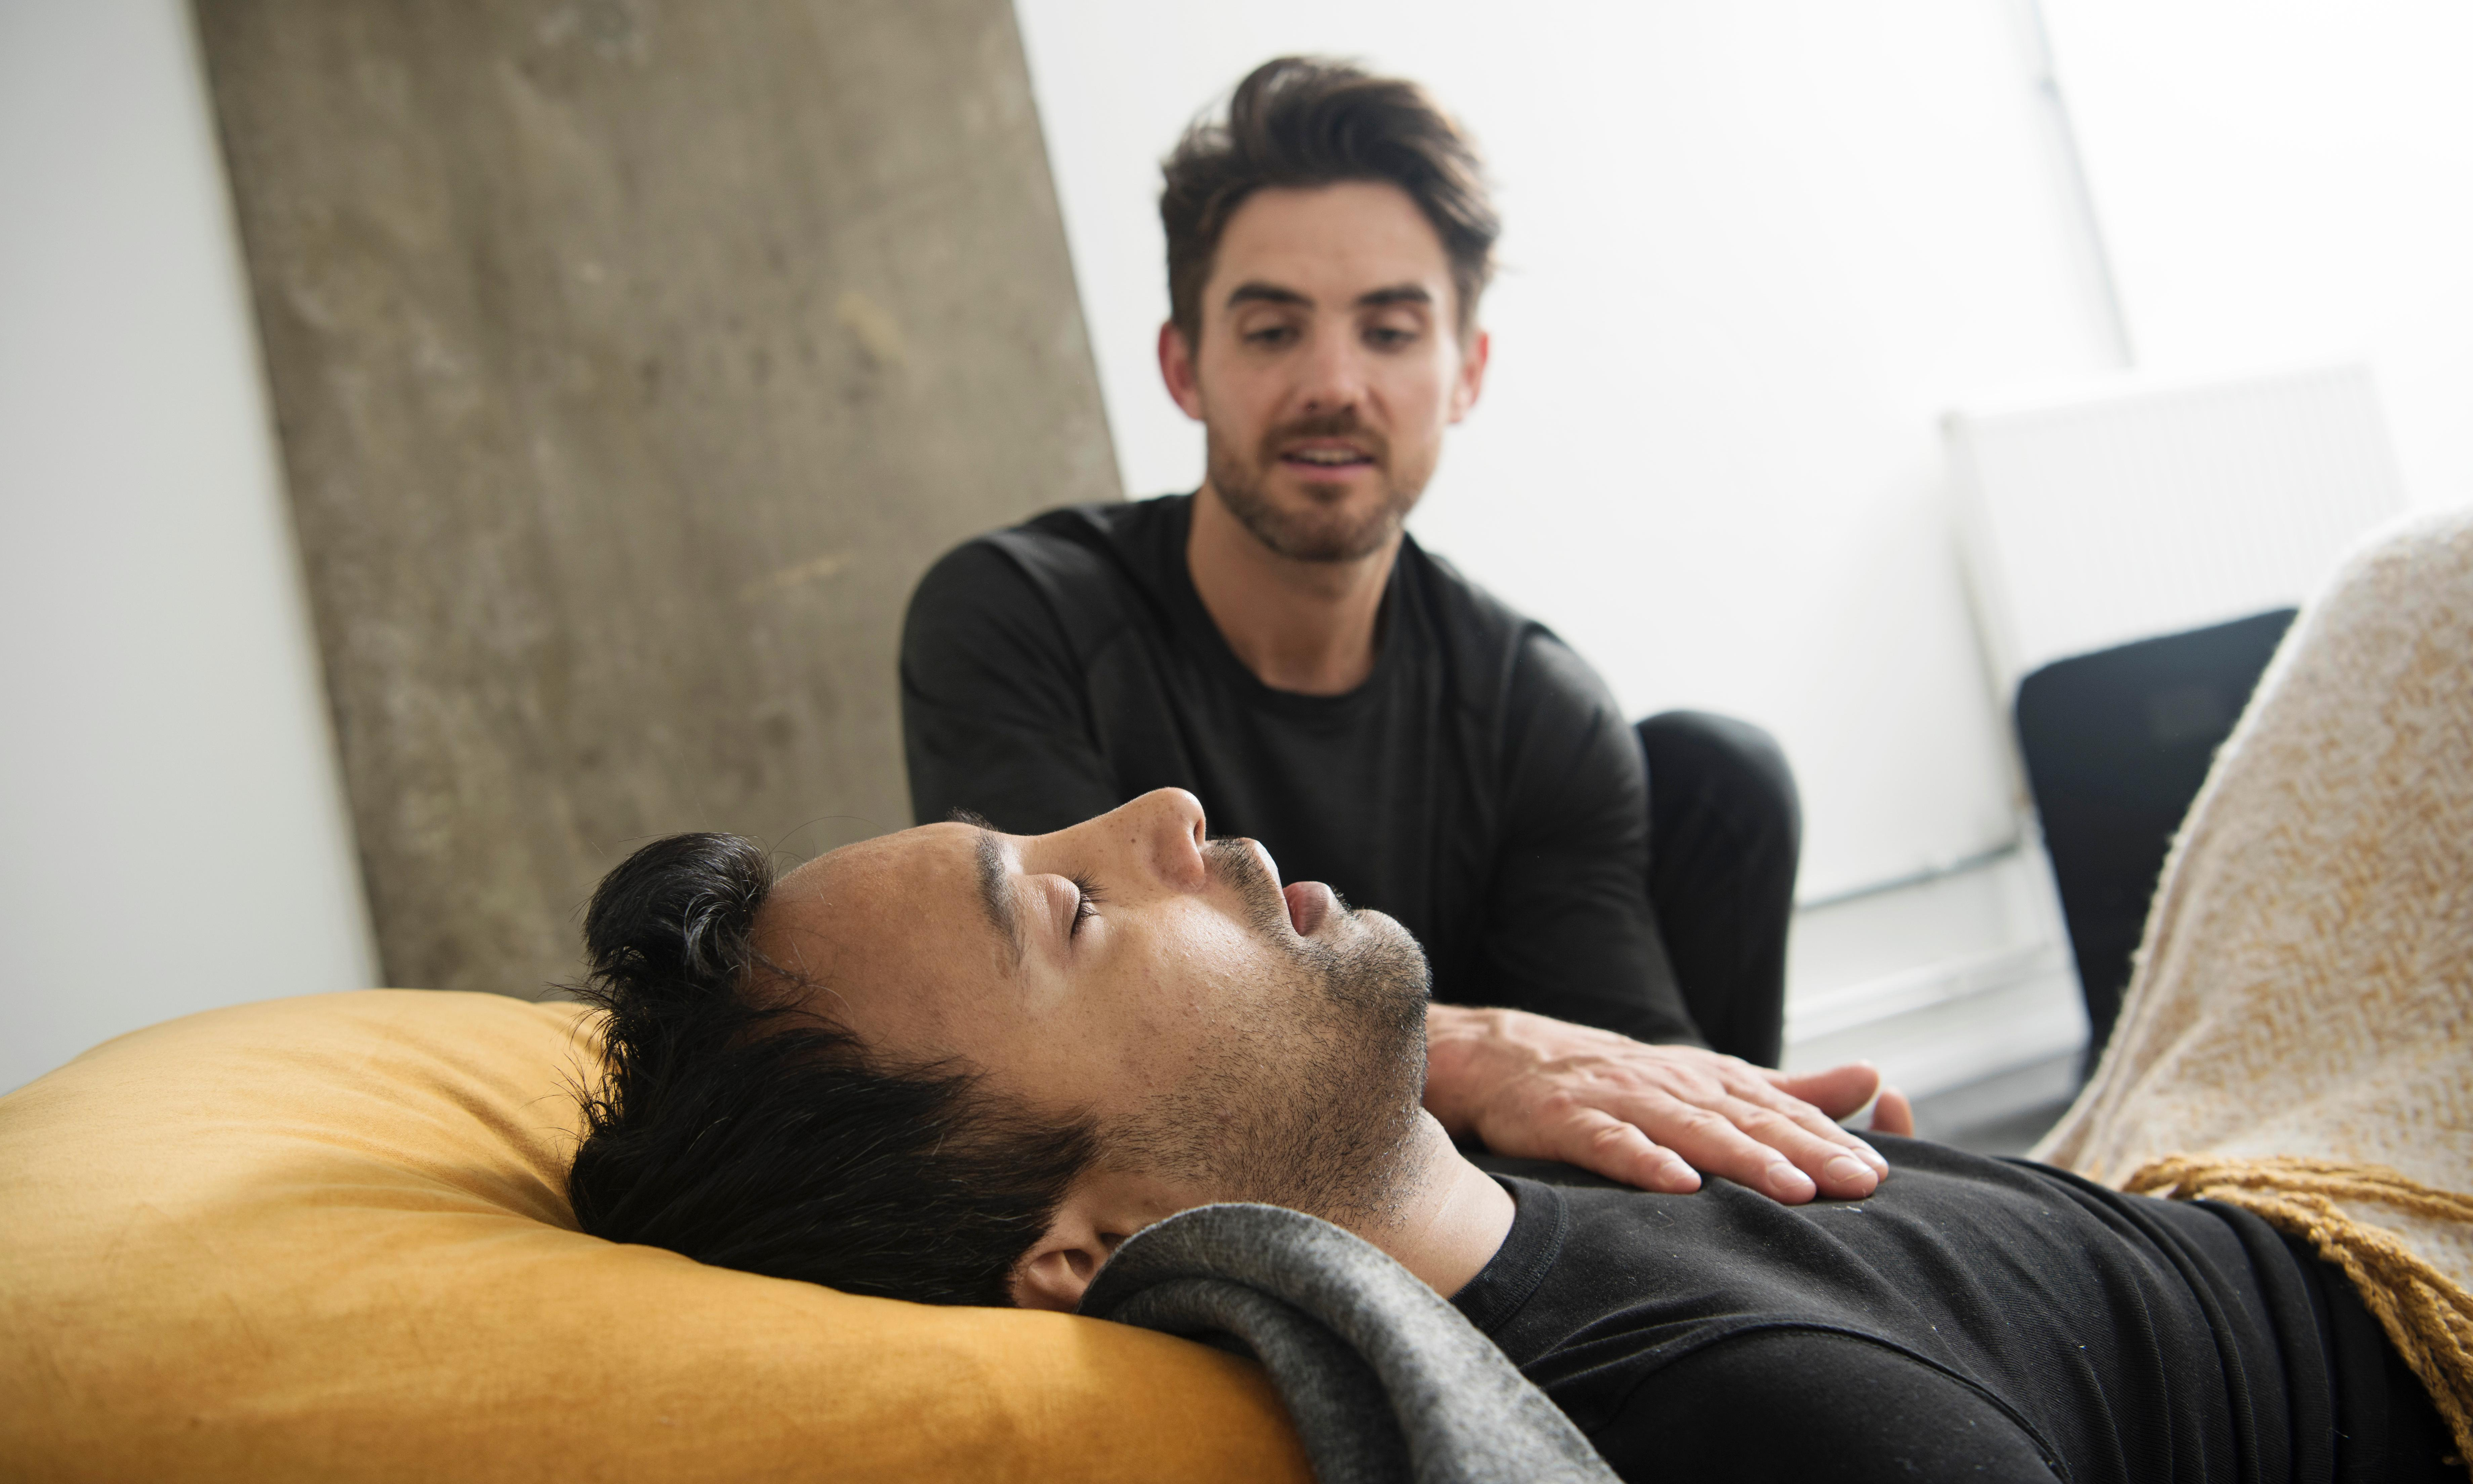 Breathpod training – can you really learn how to breathe properly?